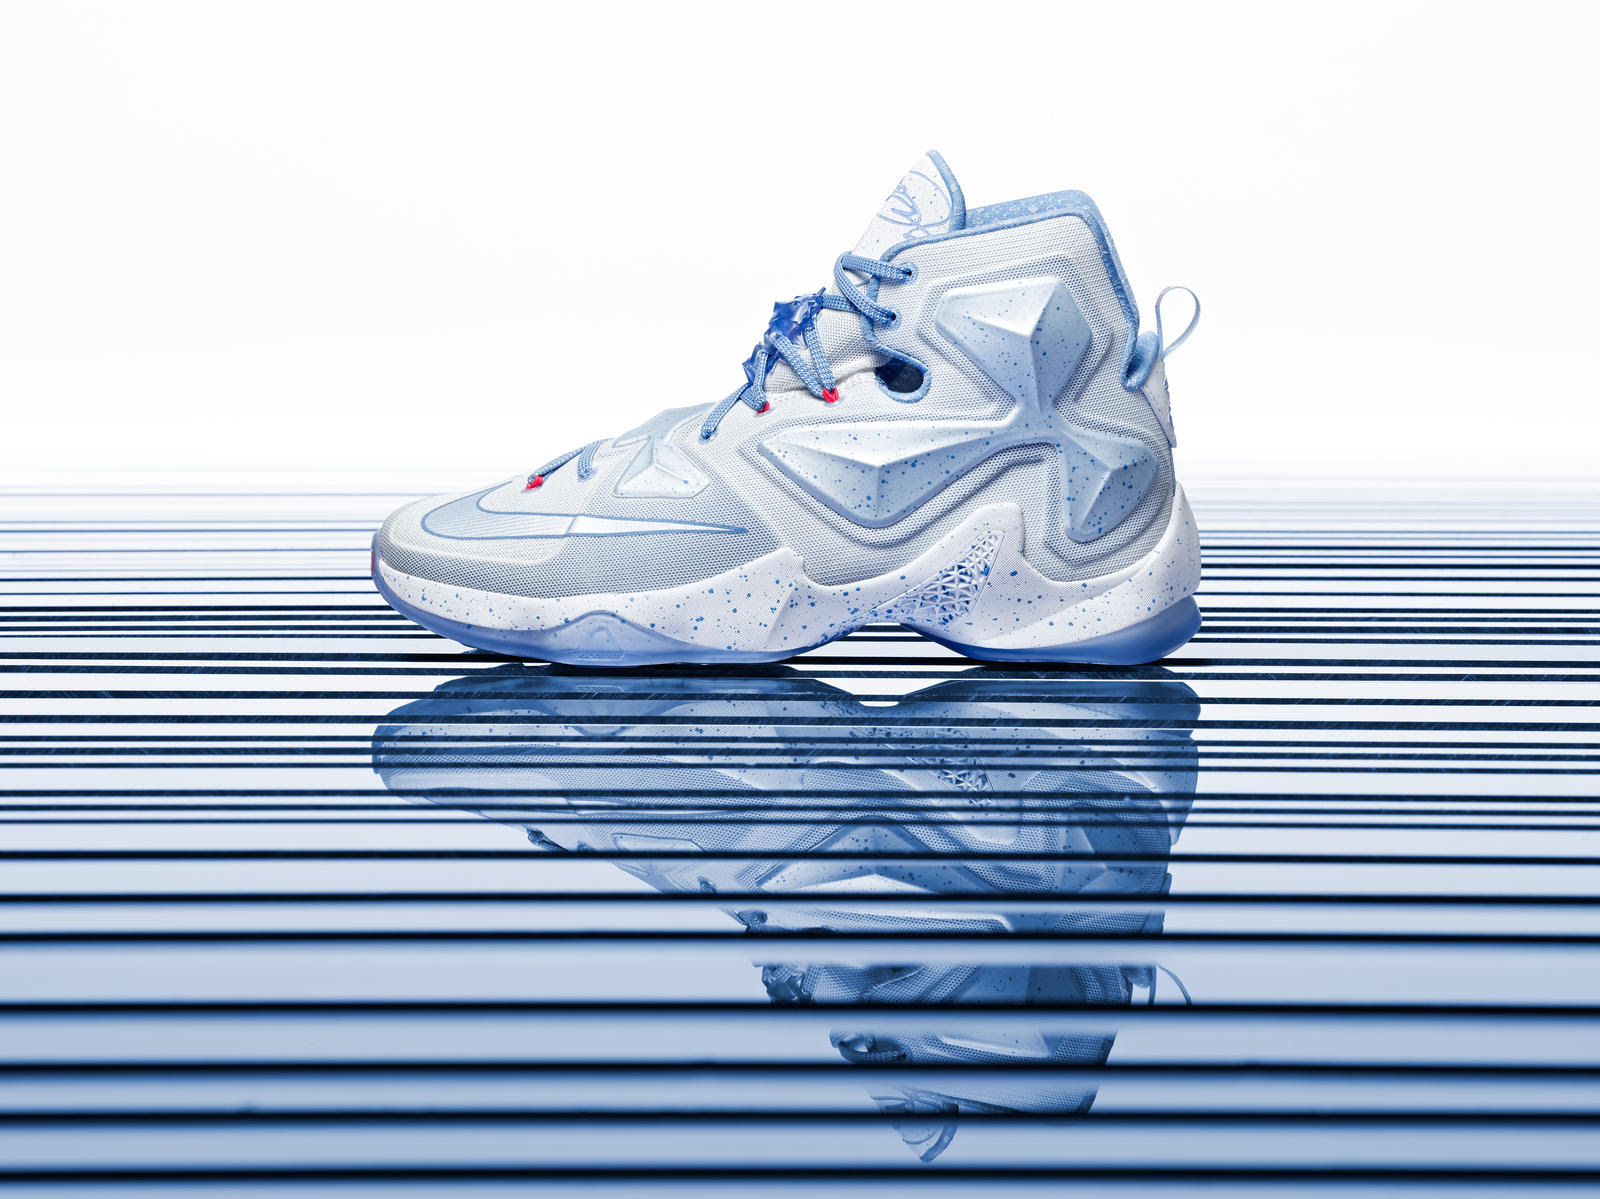 c10092dfdf02 Fierce Midwest winters inspire the icy blue hues that run throughout the  LEBRON 13